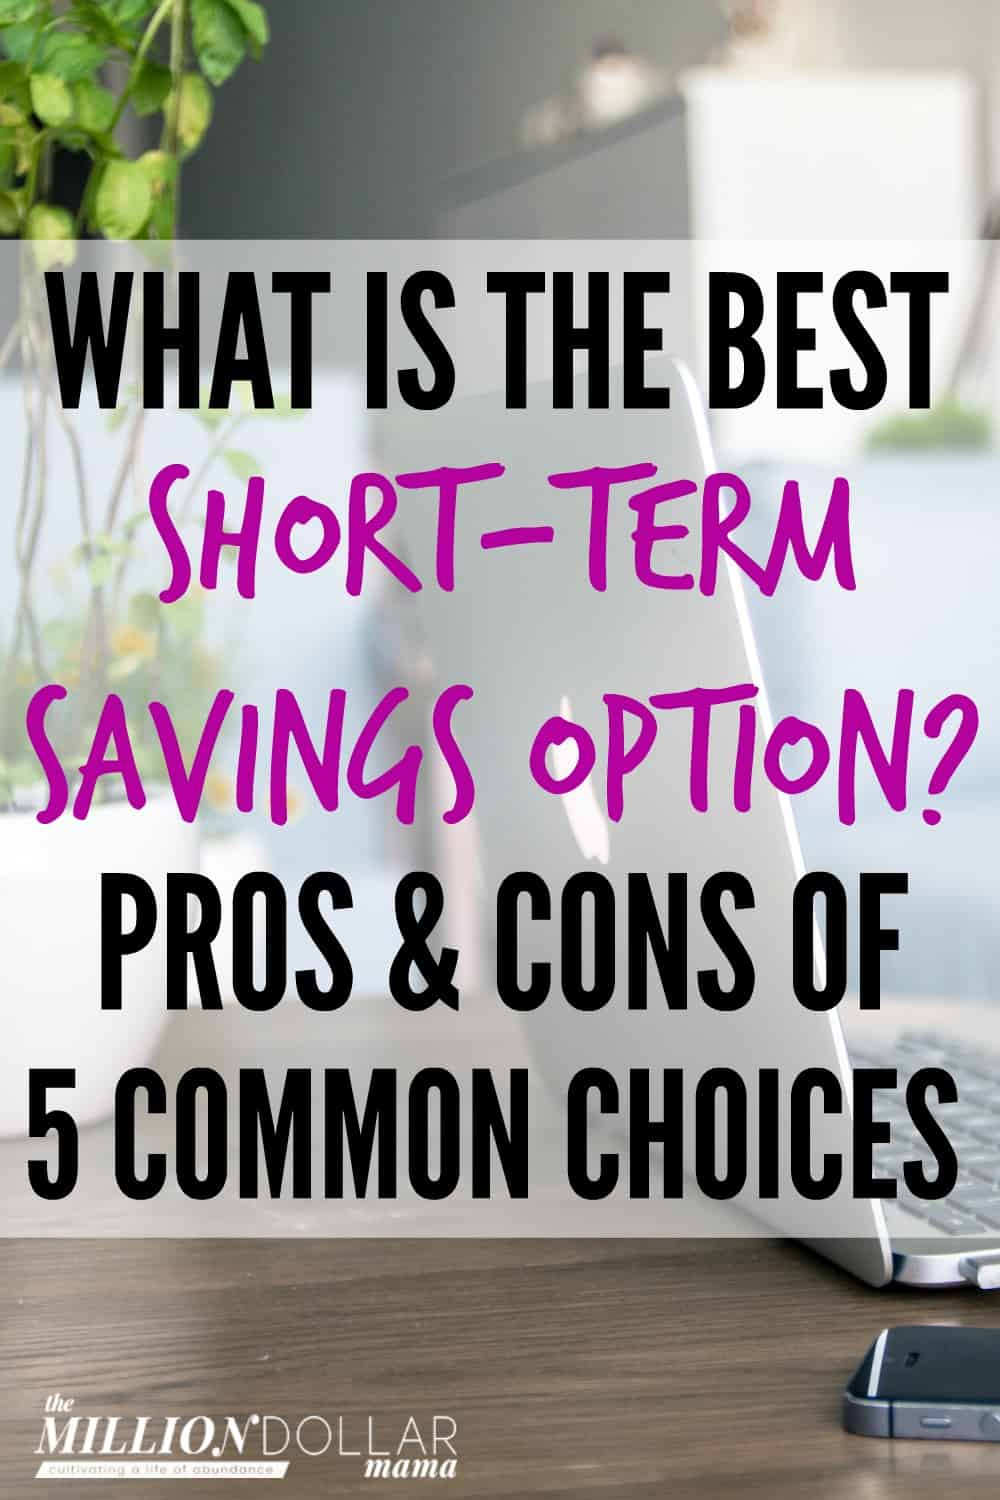 When it comes to short-term savings options, it can be difficult to know which one is best. This review of the pros and cons of the various different options for short-term savings will help to give you a better idea of where to put your short-term savings, and where to keep your emergency fund.